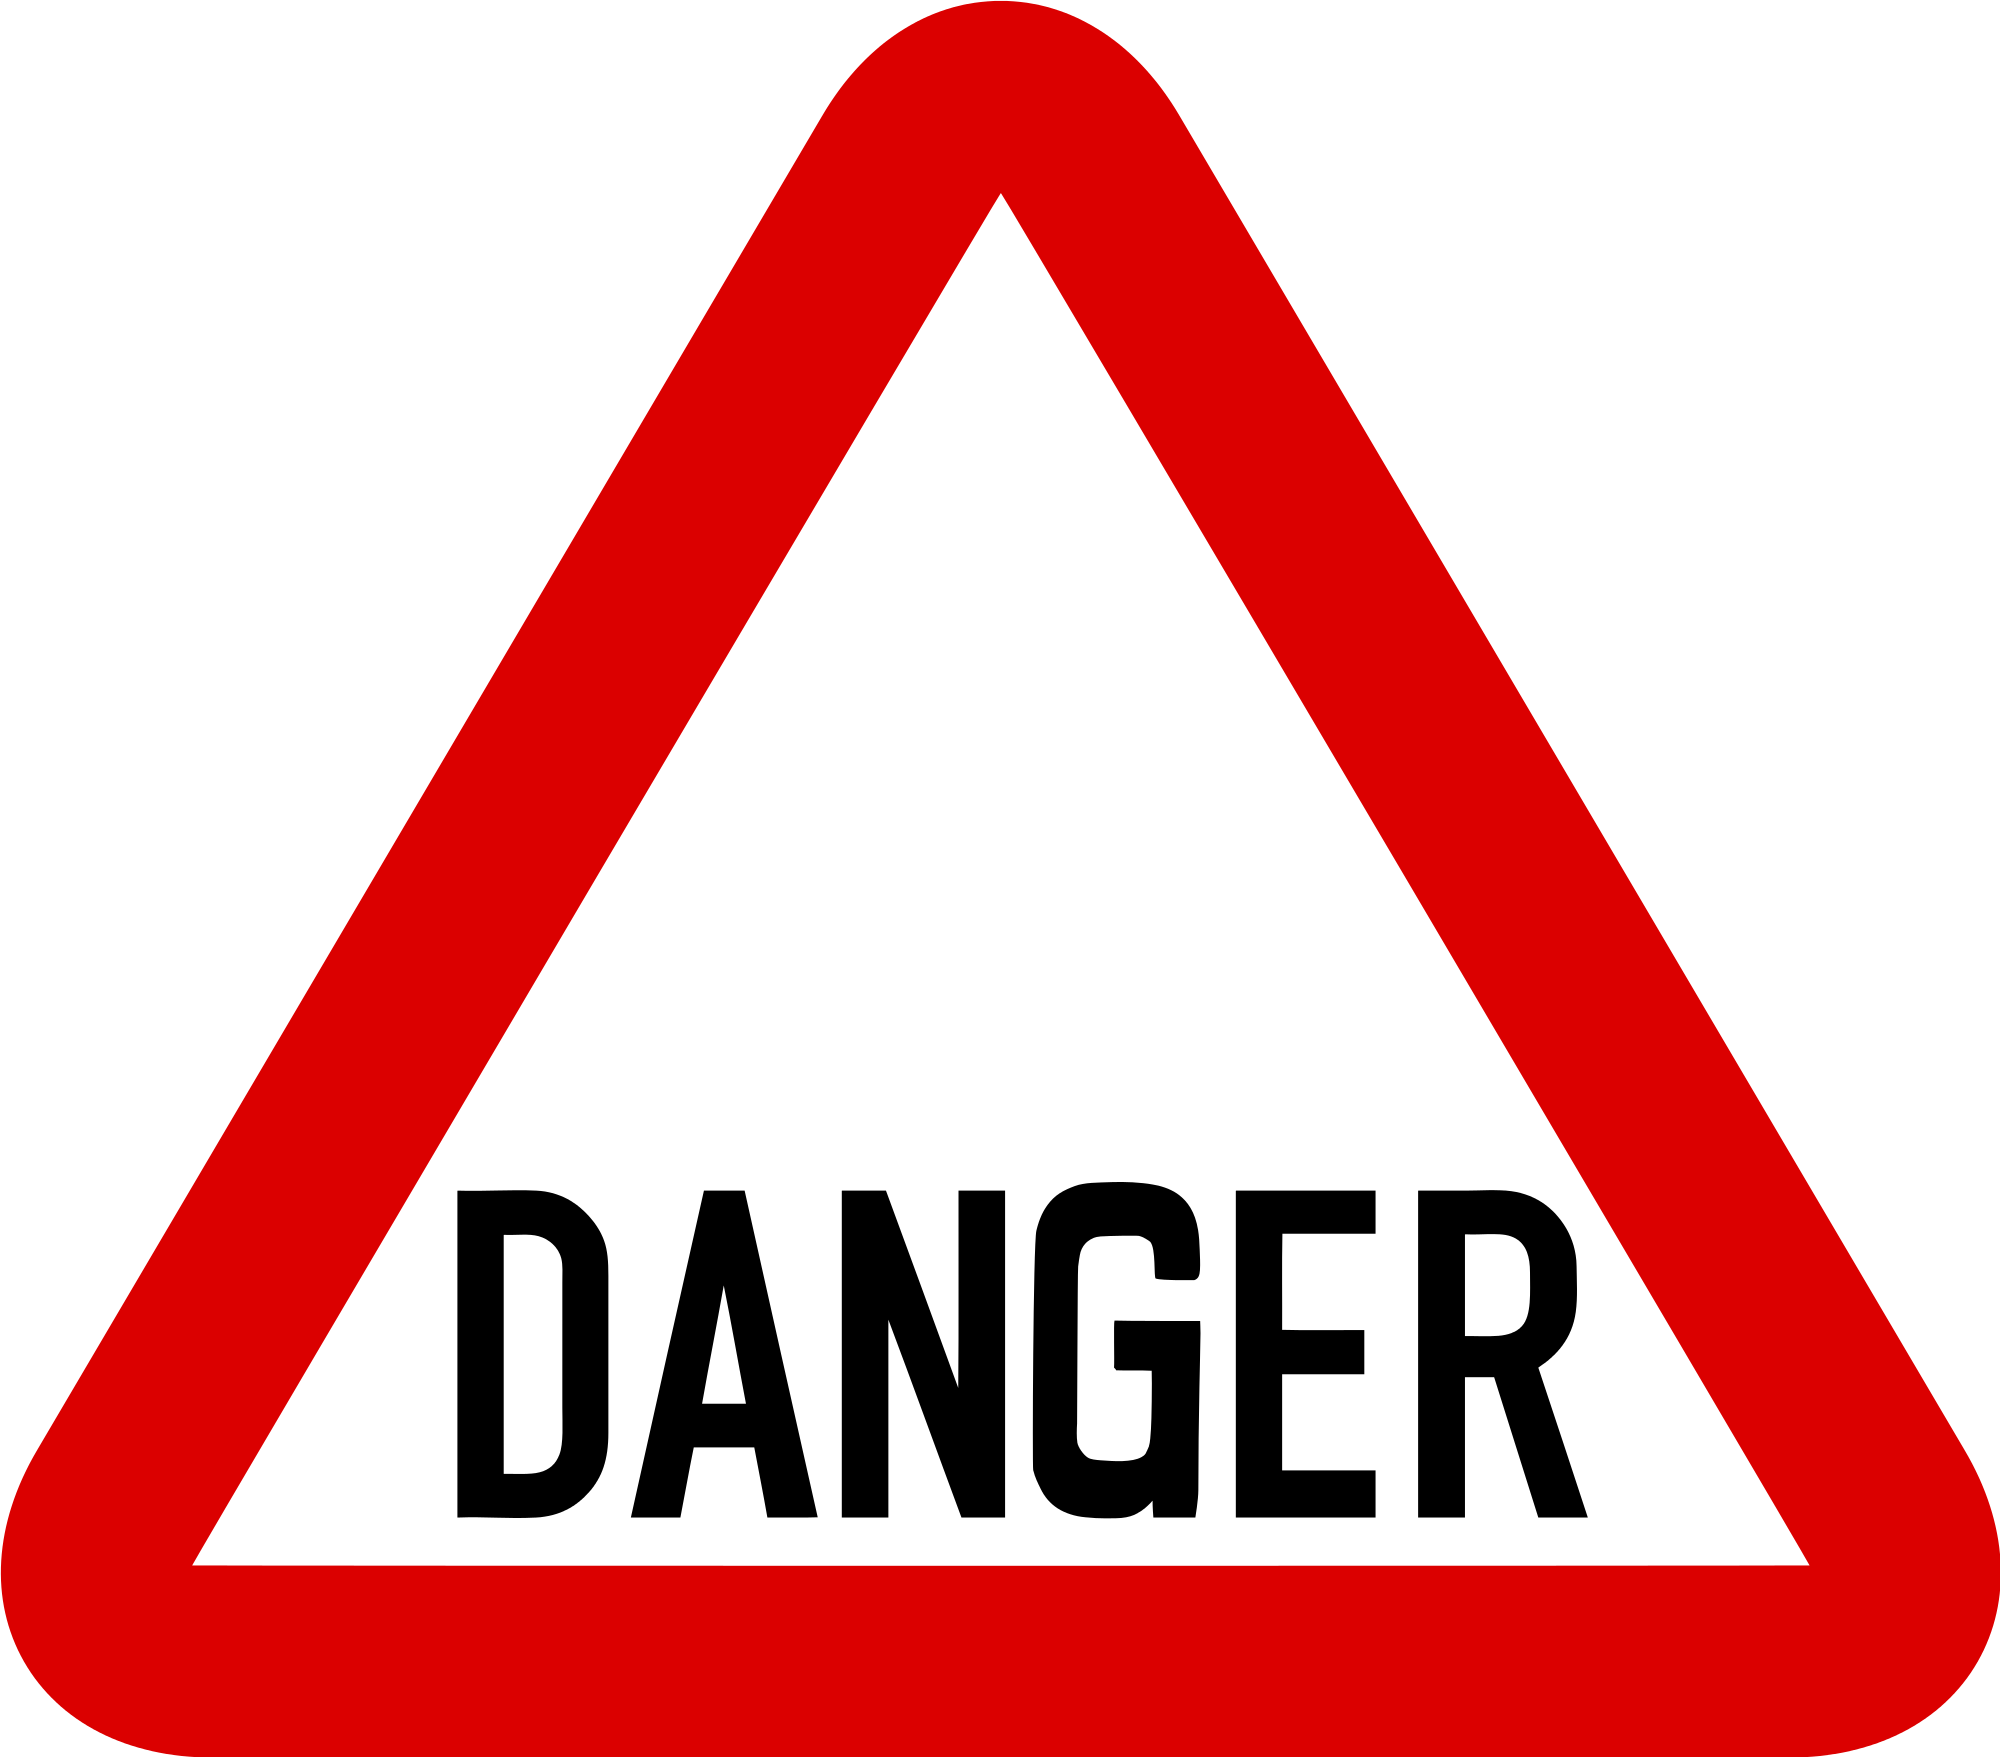 Danger clipart warning sign Download Danger Clip Wikimedia Art